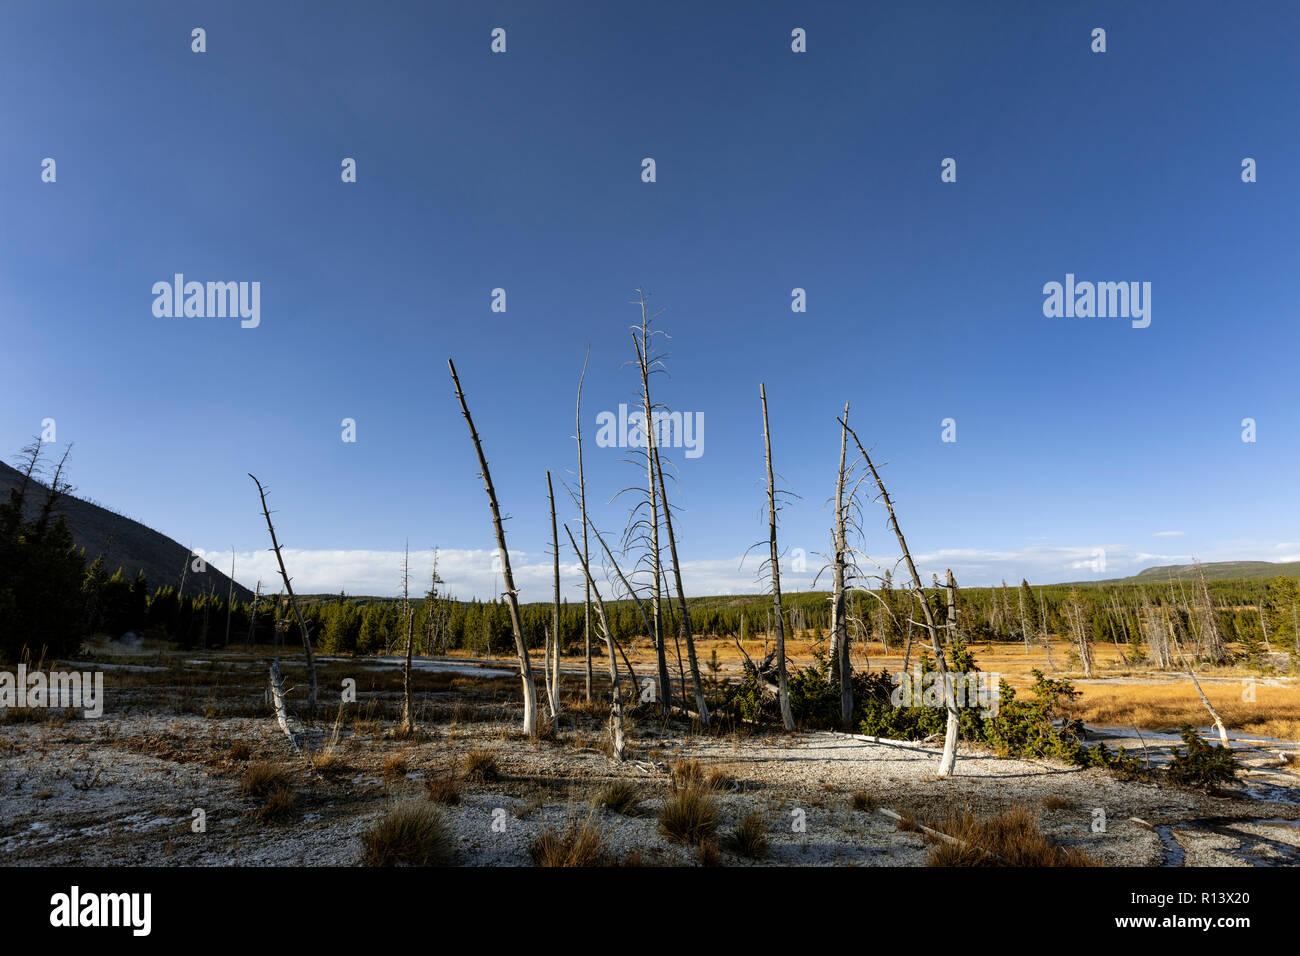 WY03571-00...WYOMING - Dead trees in the HeartLake Geyser Basin, Yellowstone National Park. - Stock Image